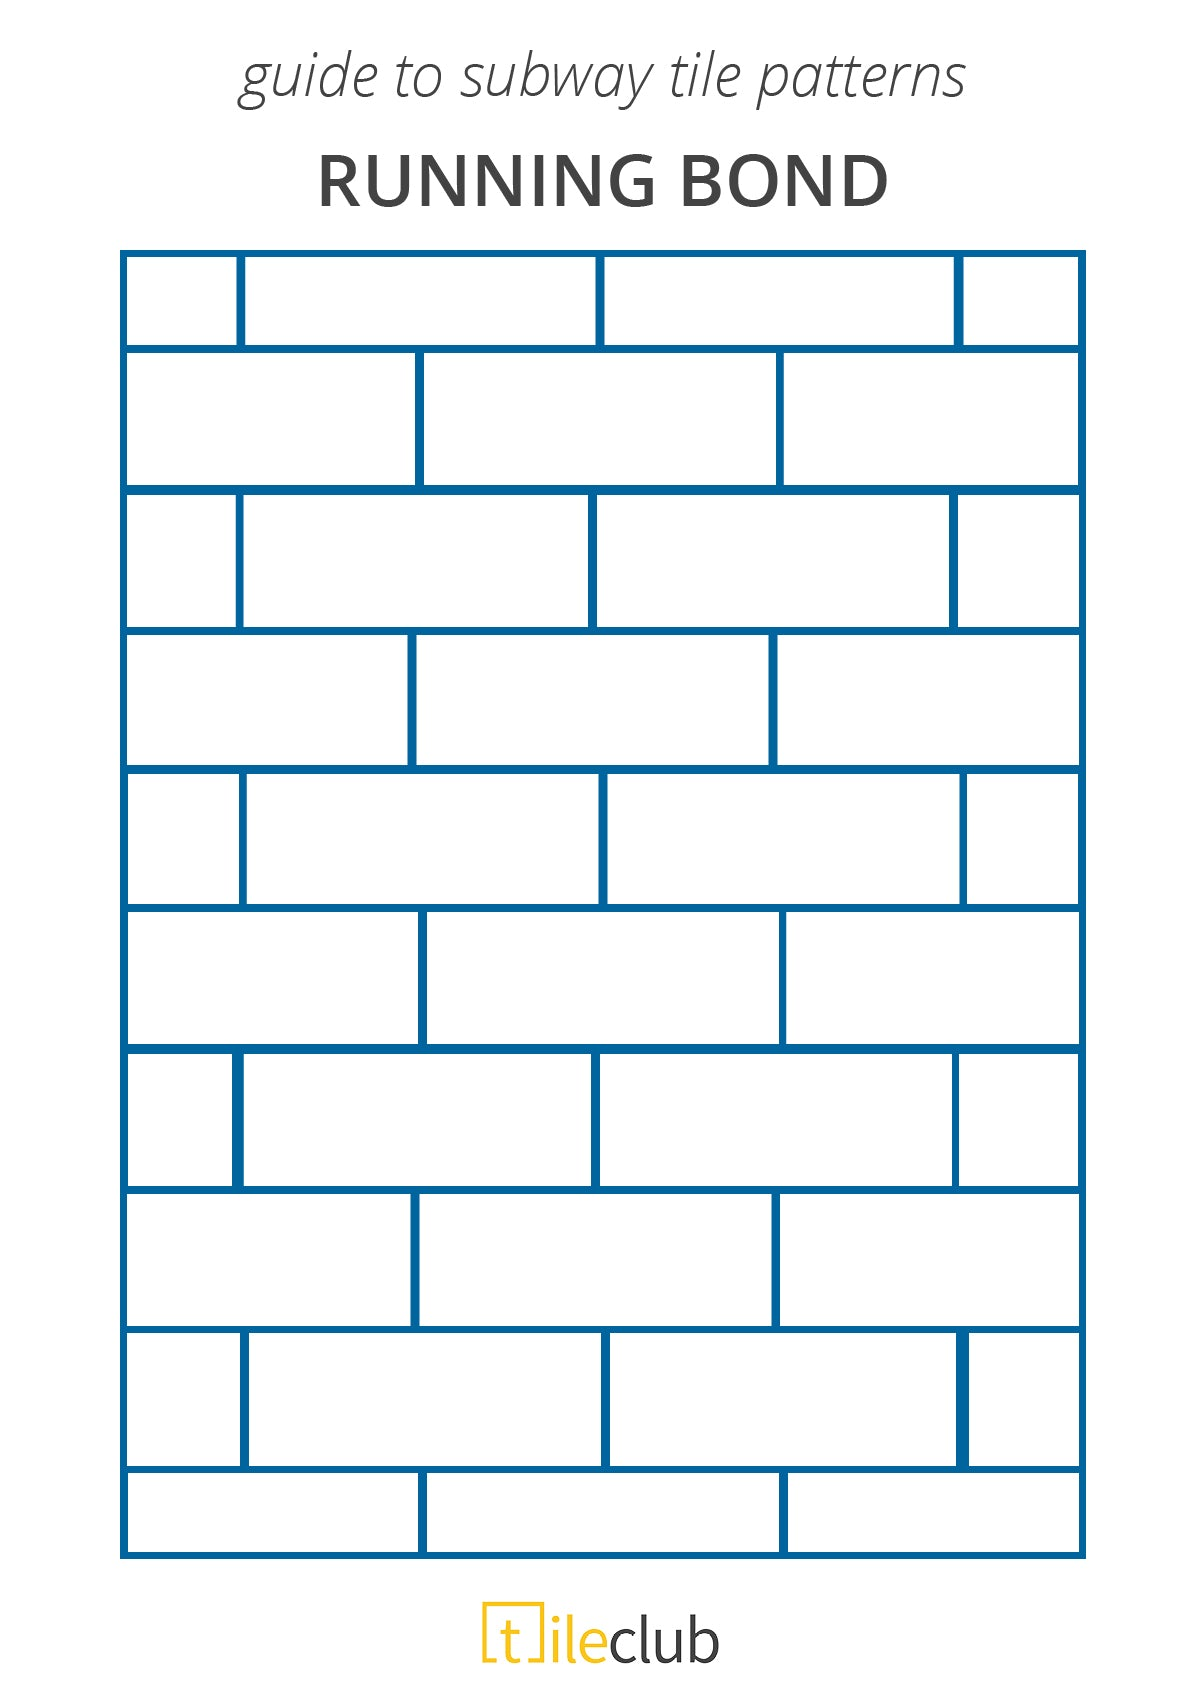 Running Bond Pattern or Brick Layout for Subway Tile